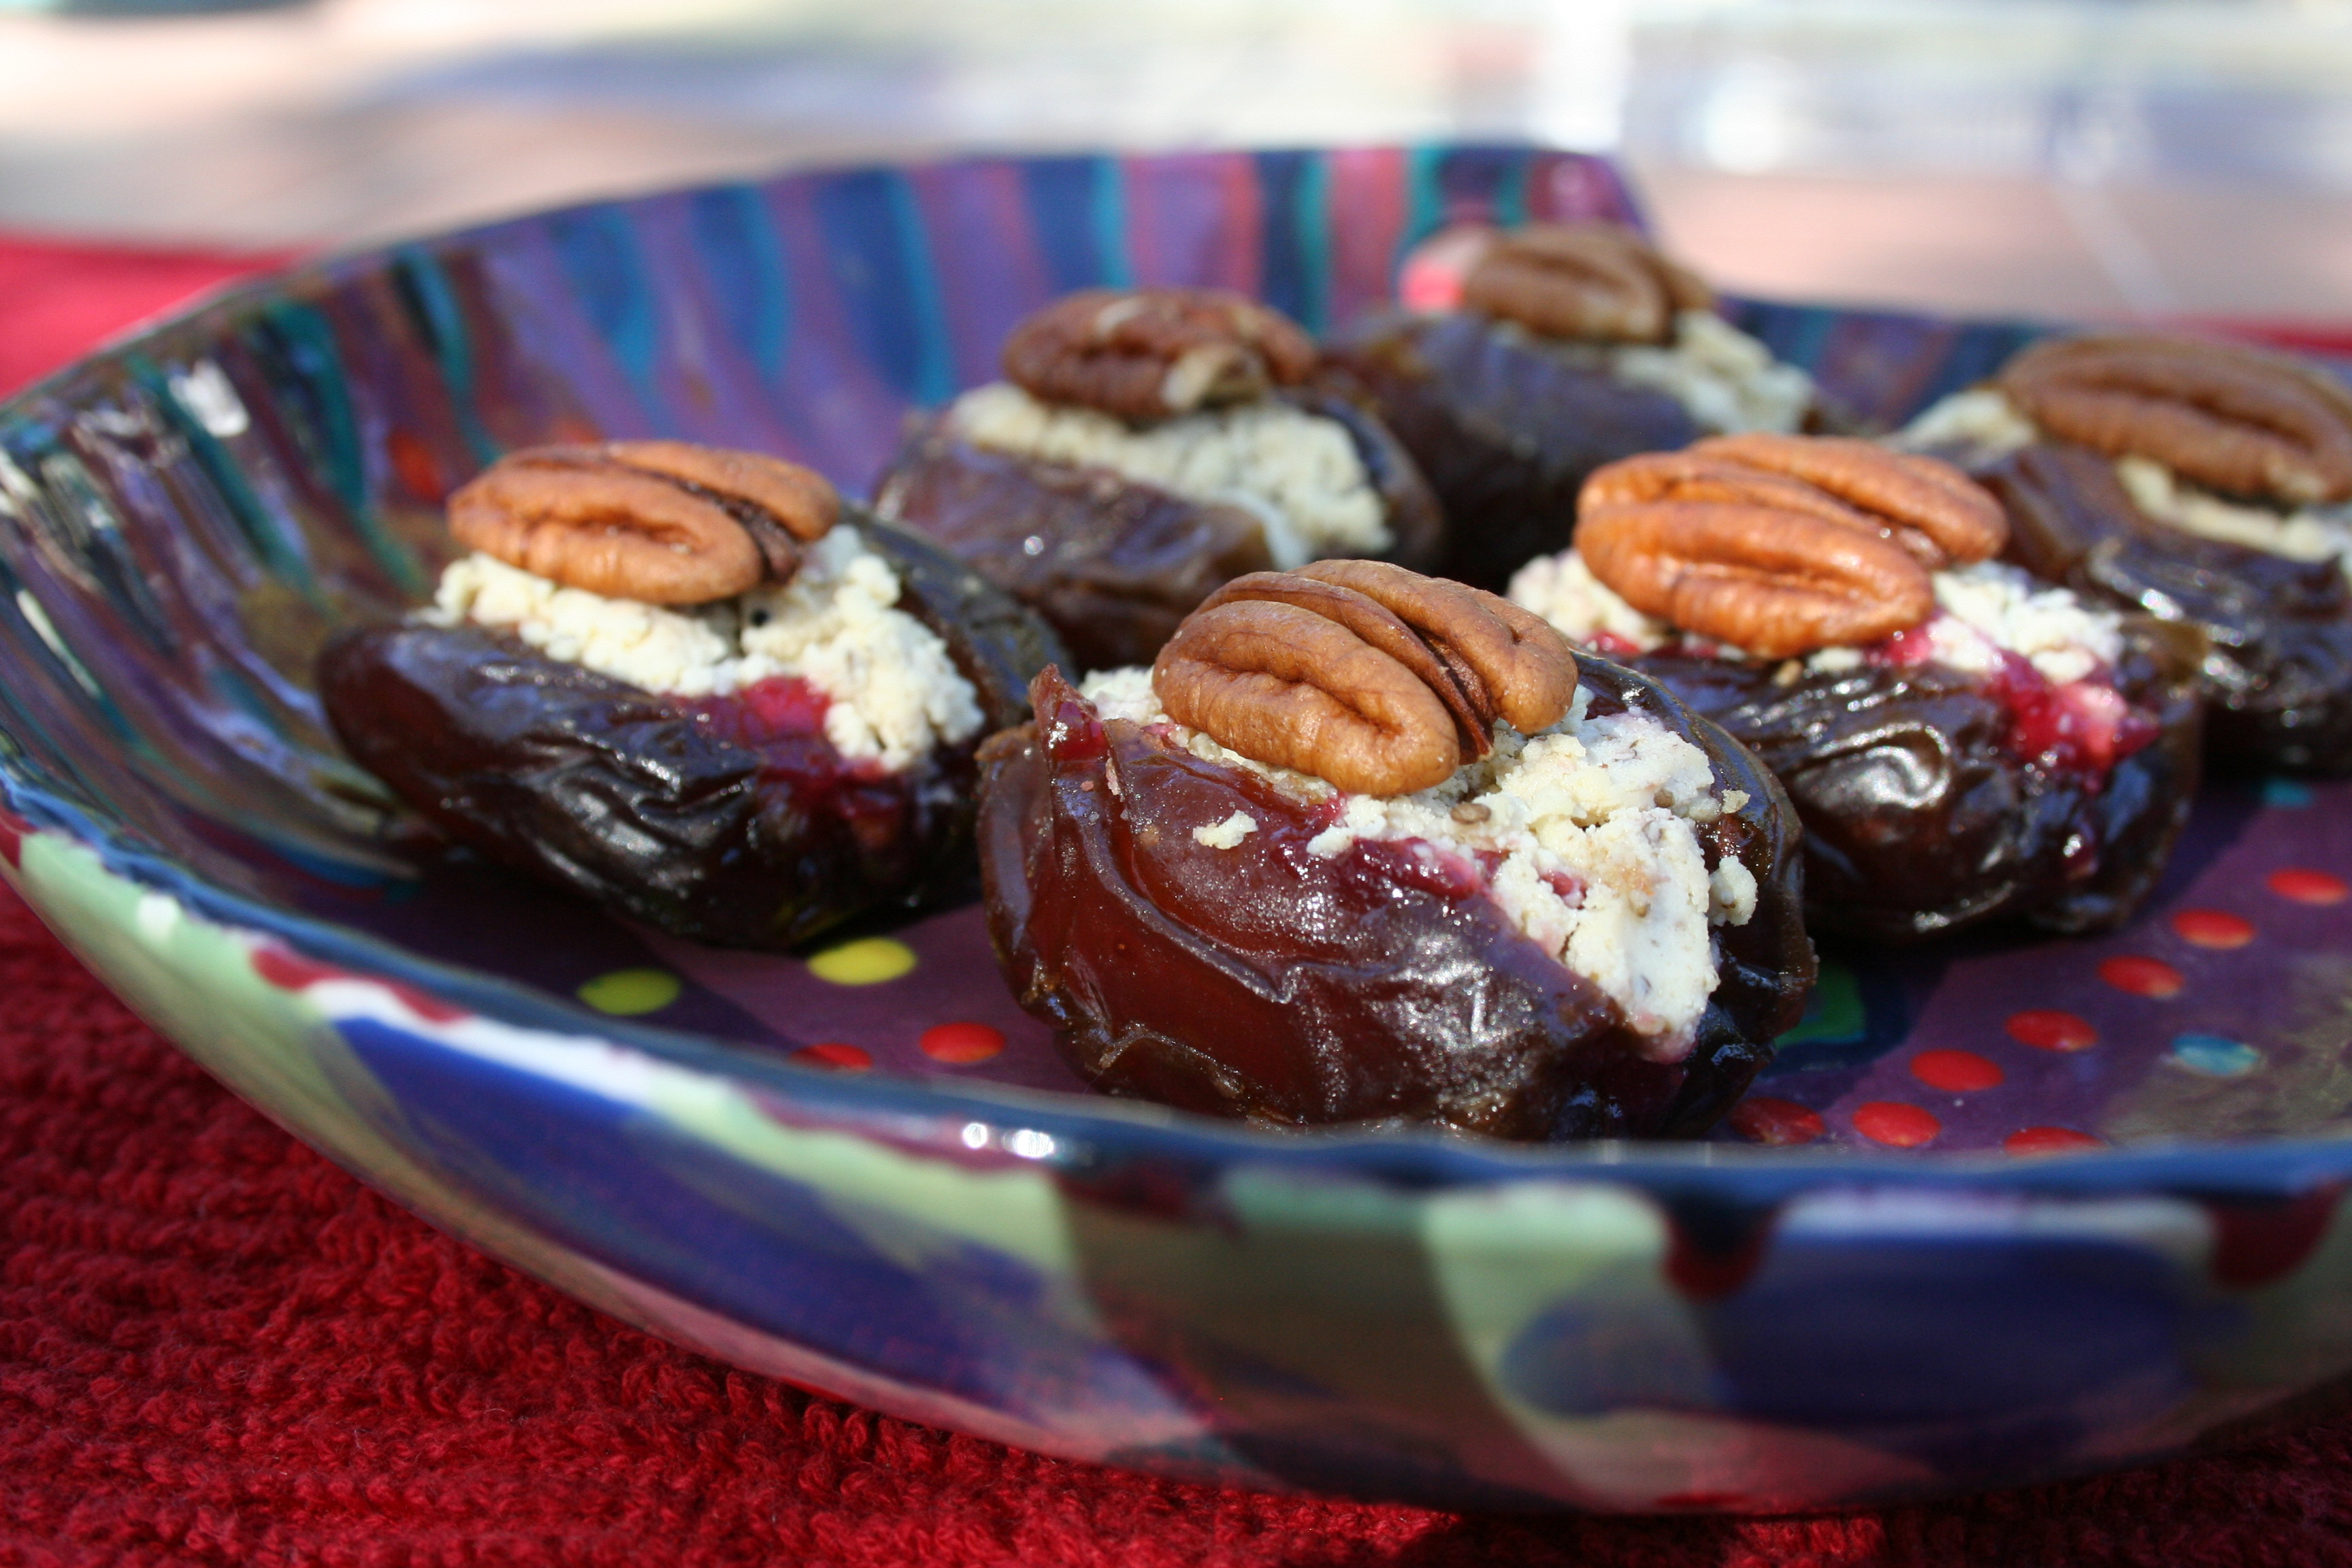 Stuffed Dates with Pecans, Soy Bleu, and Cranberry